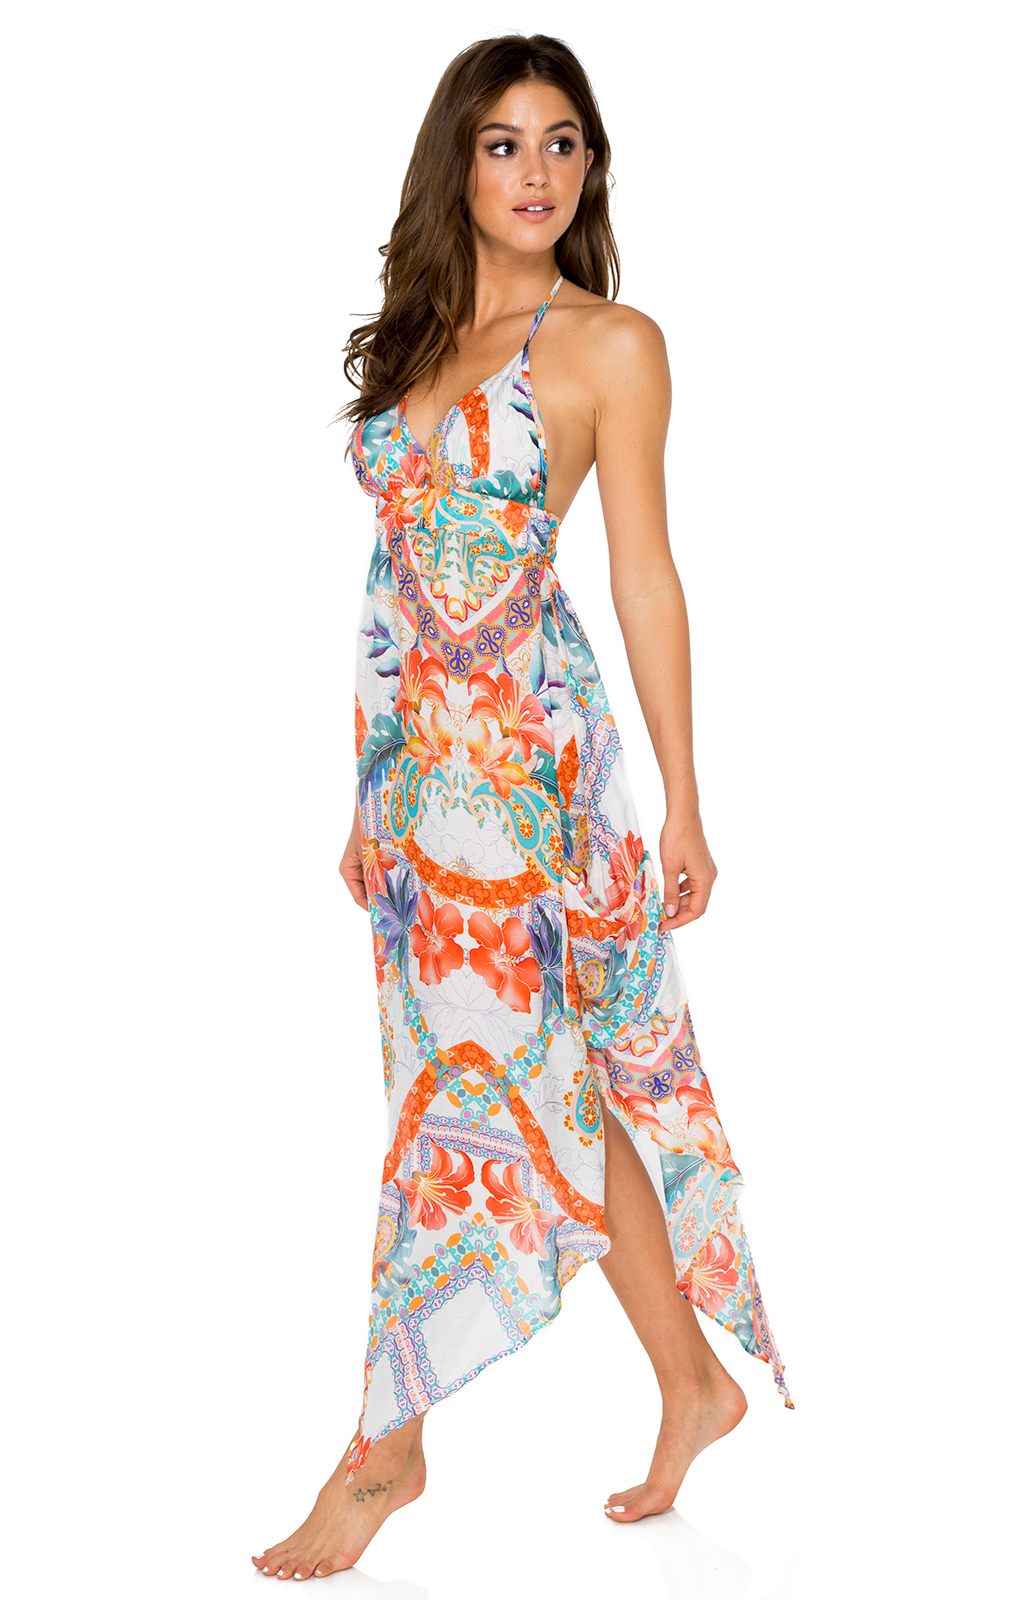 Mission beach clothing stores